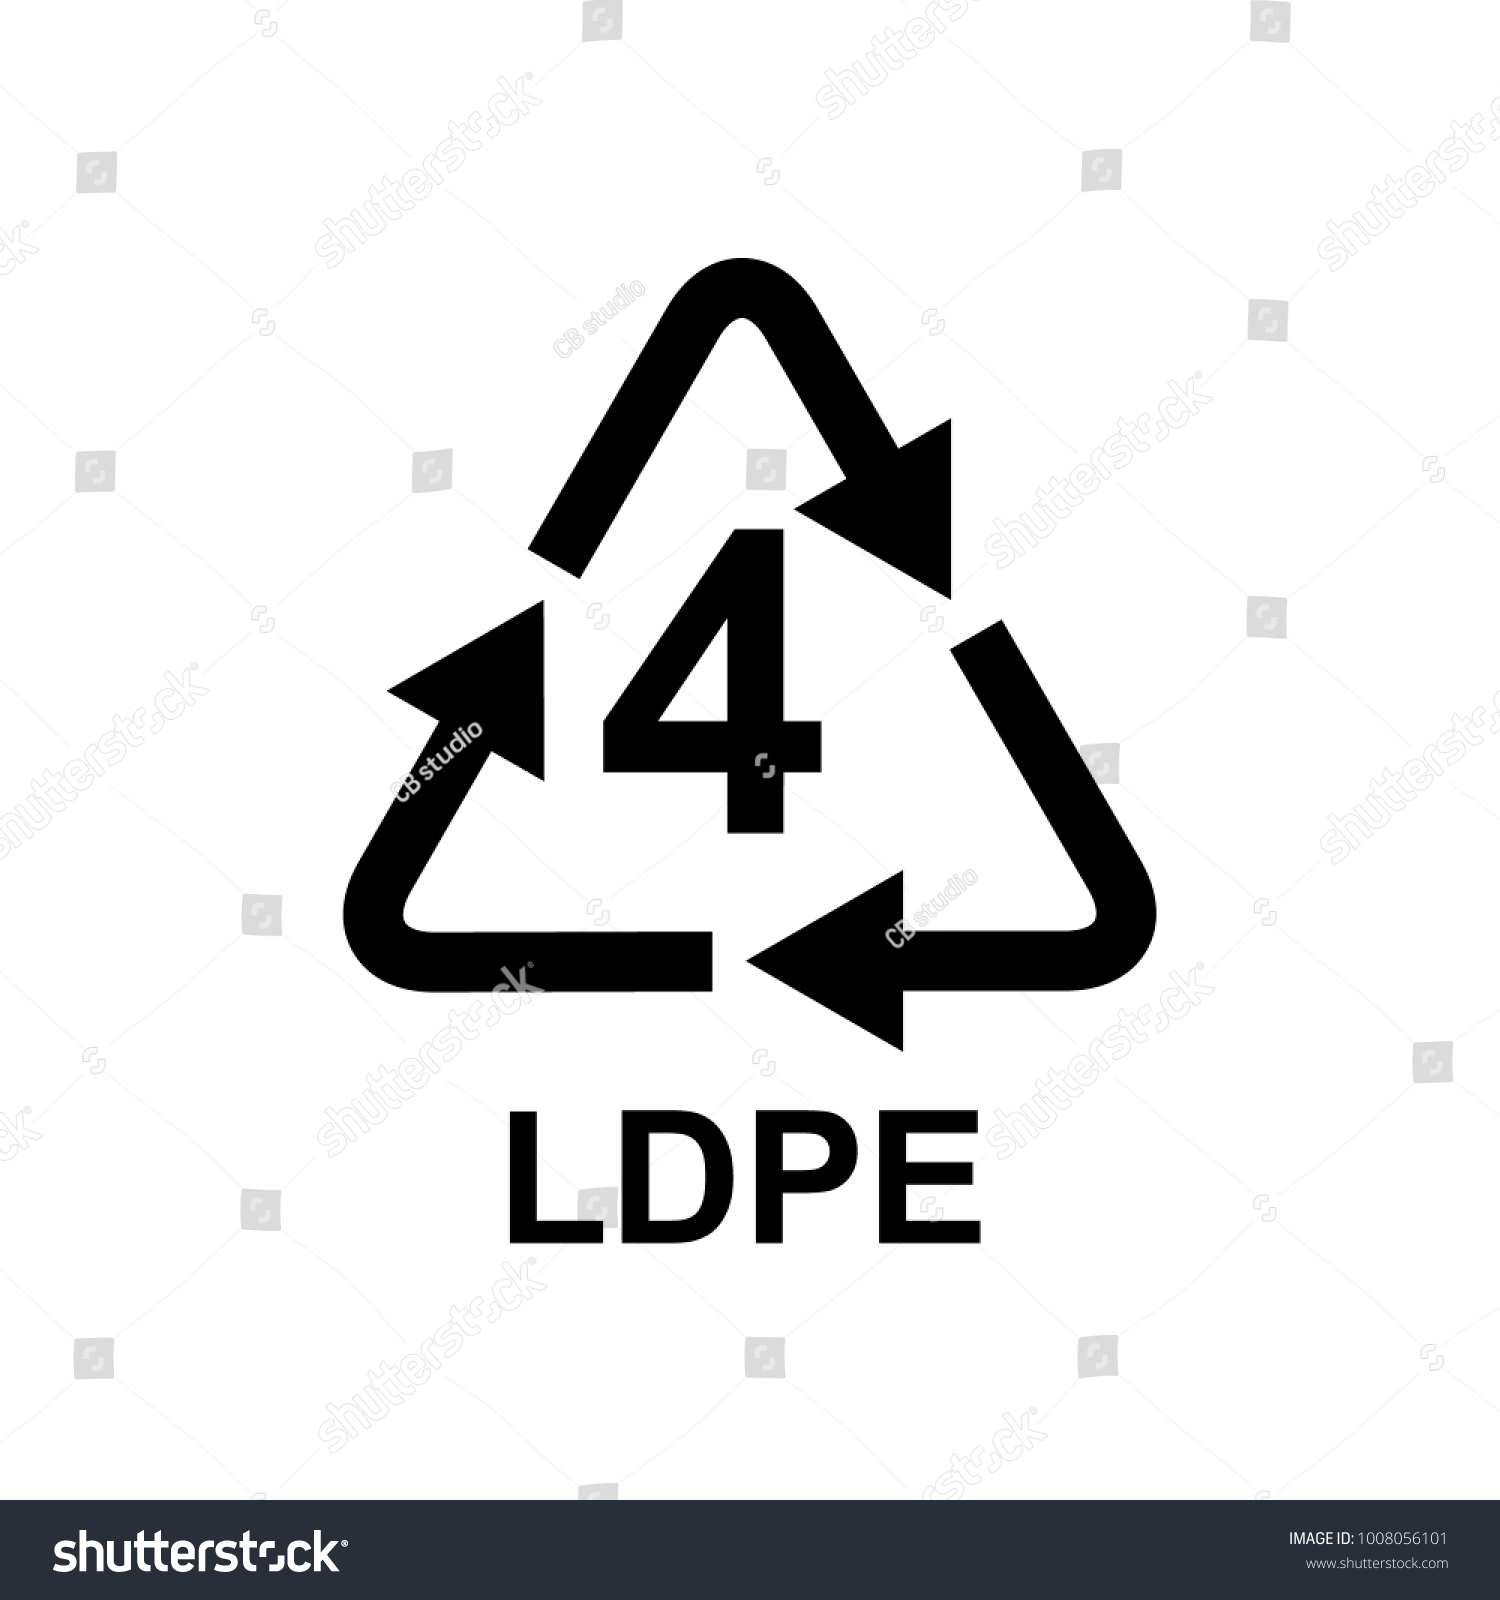 Plastic recycling symbol 4 ldpe stock vector 1008056101 shutterstock plastic recycling symbol 4 ldpe biocorpaavc Choice Image